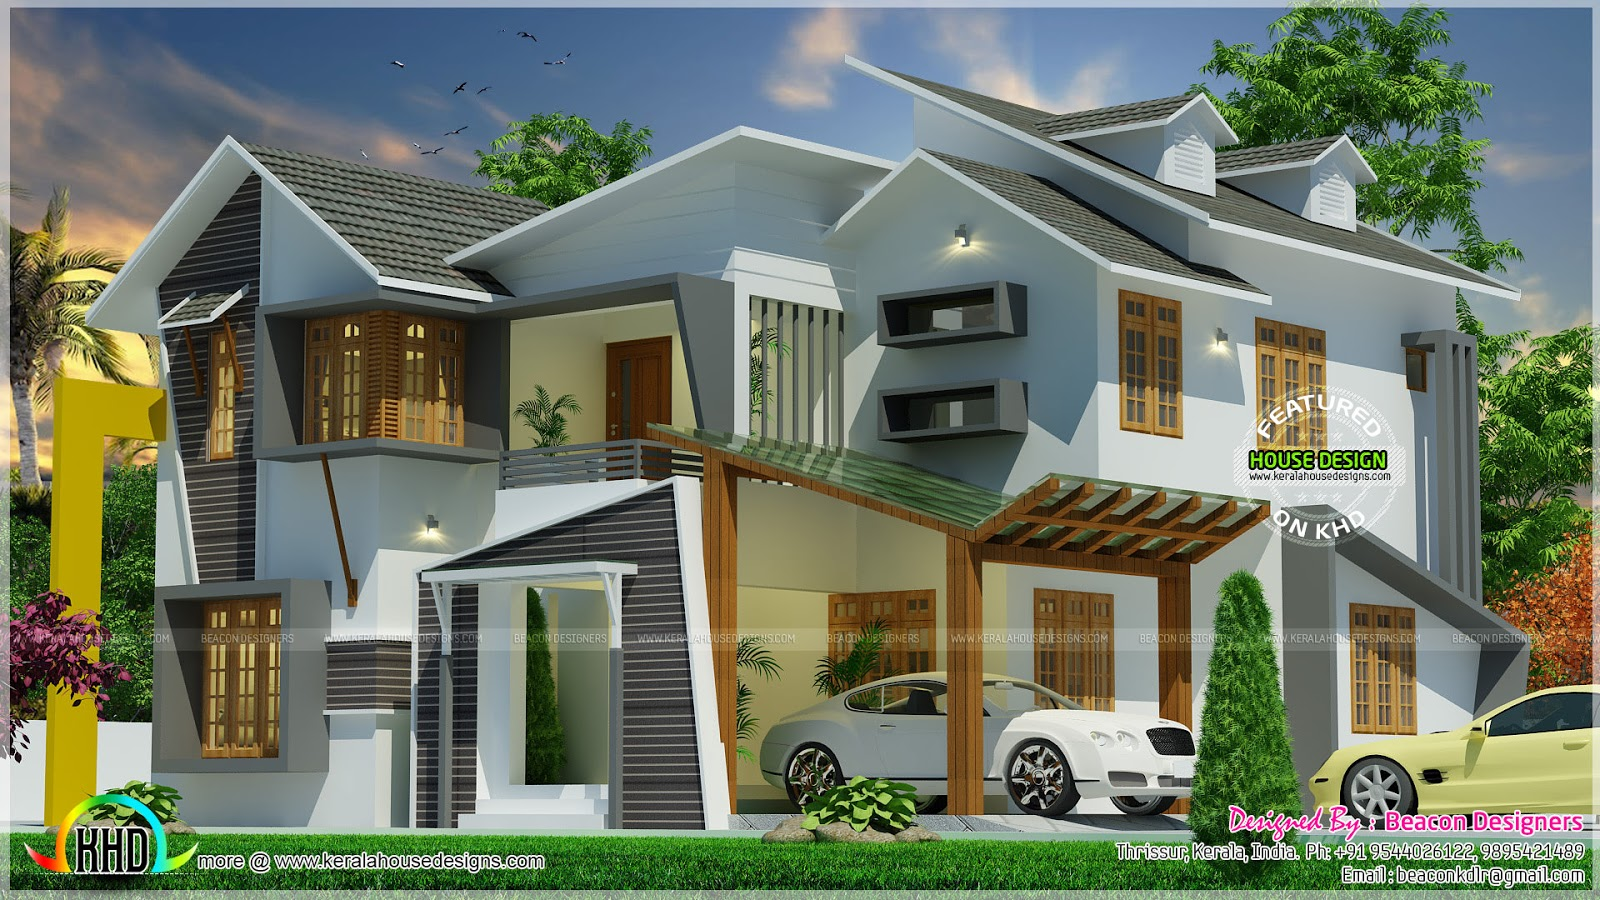 Ultra modern home with dormer windows kerala home design for Ultra modern house designs